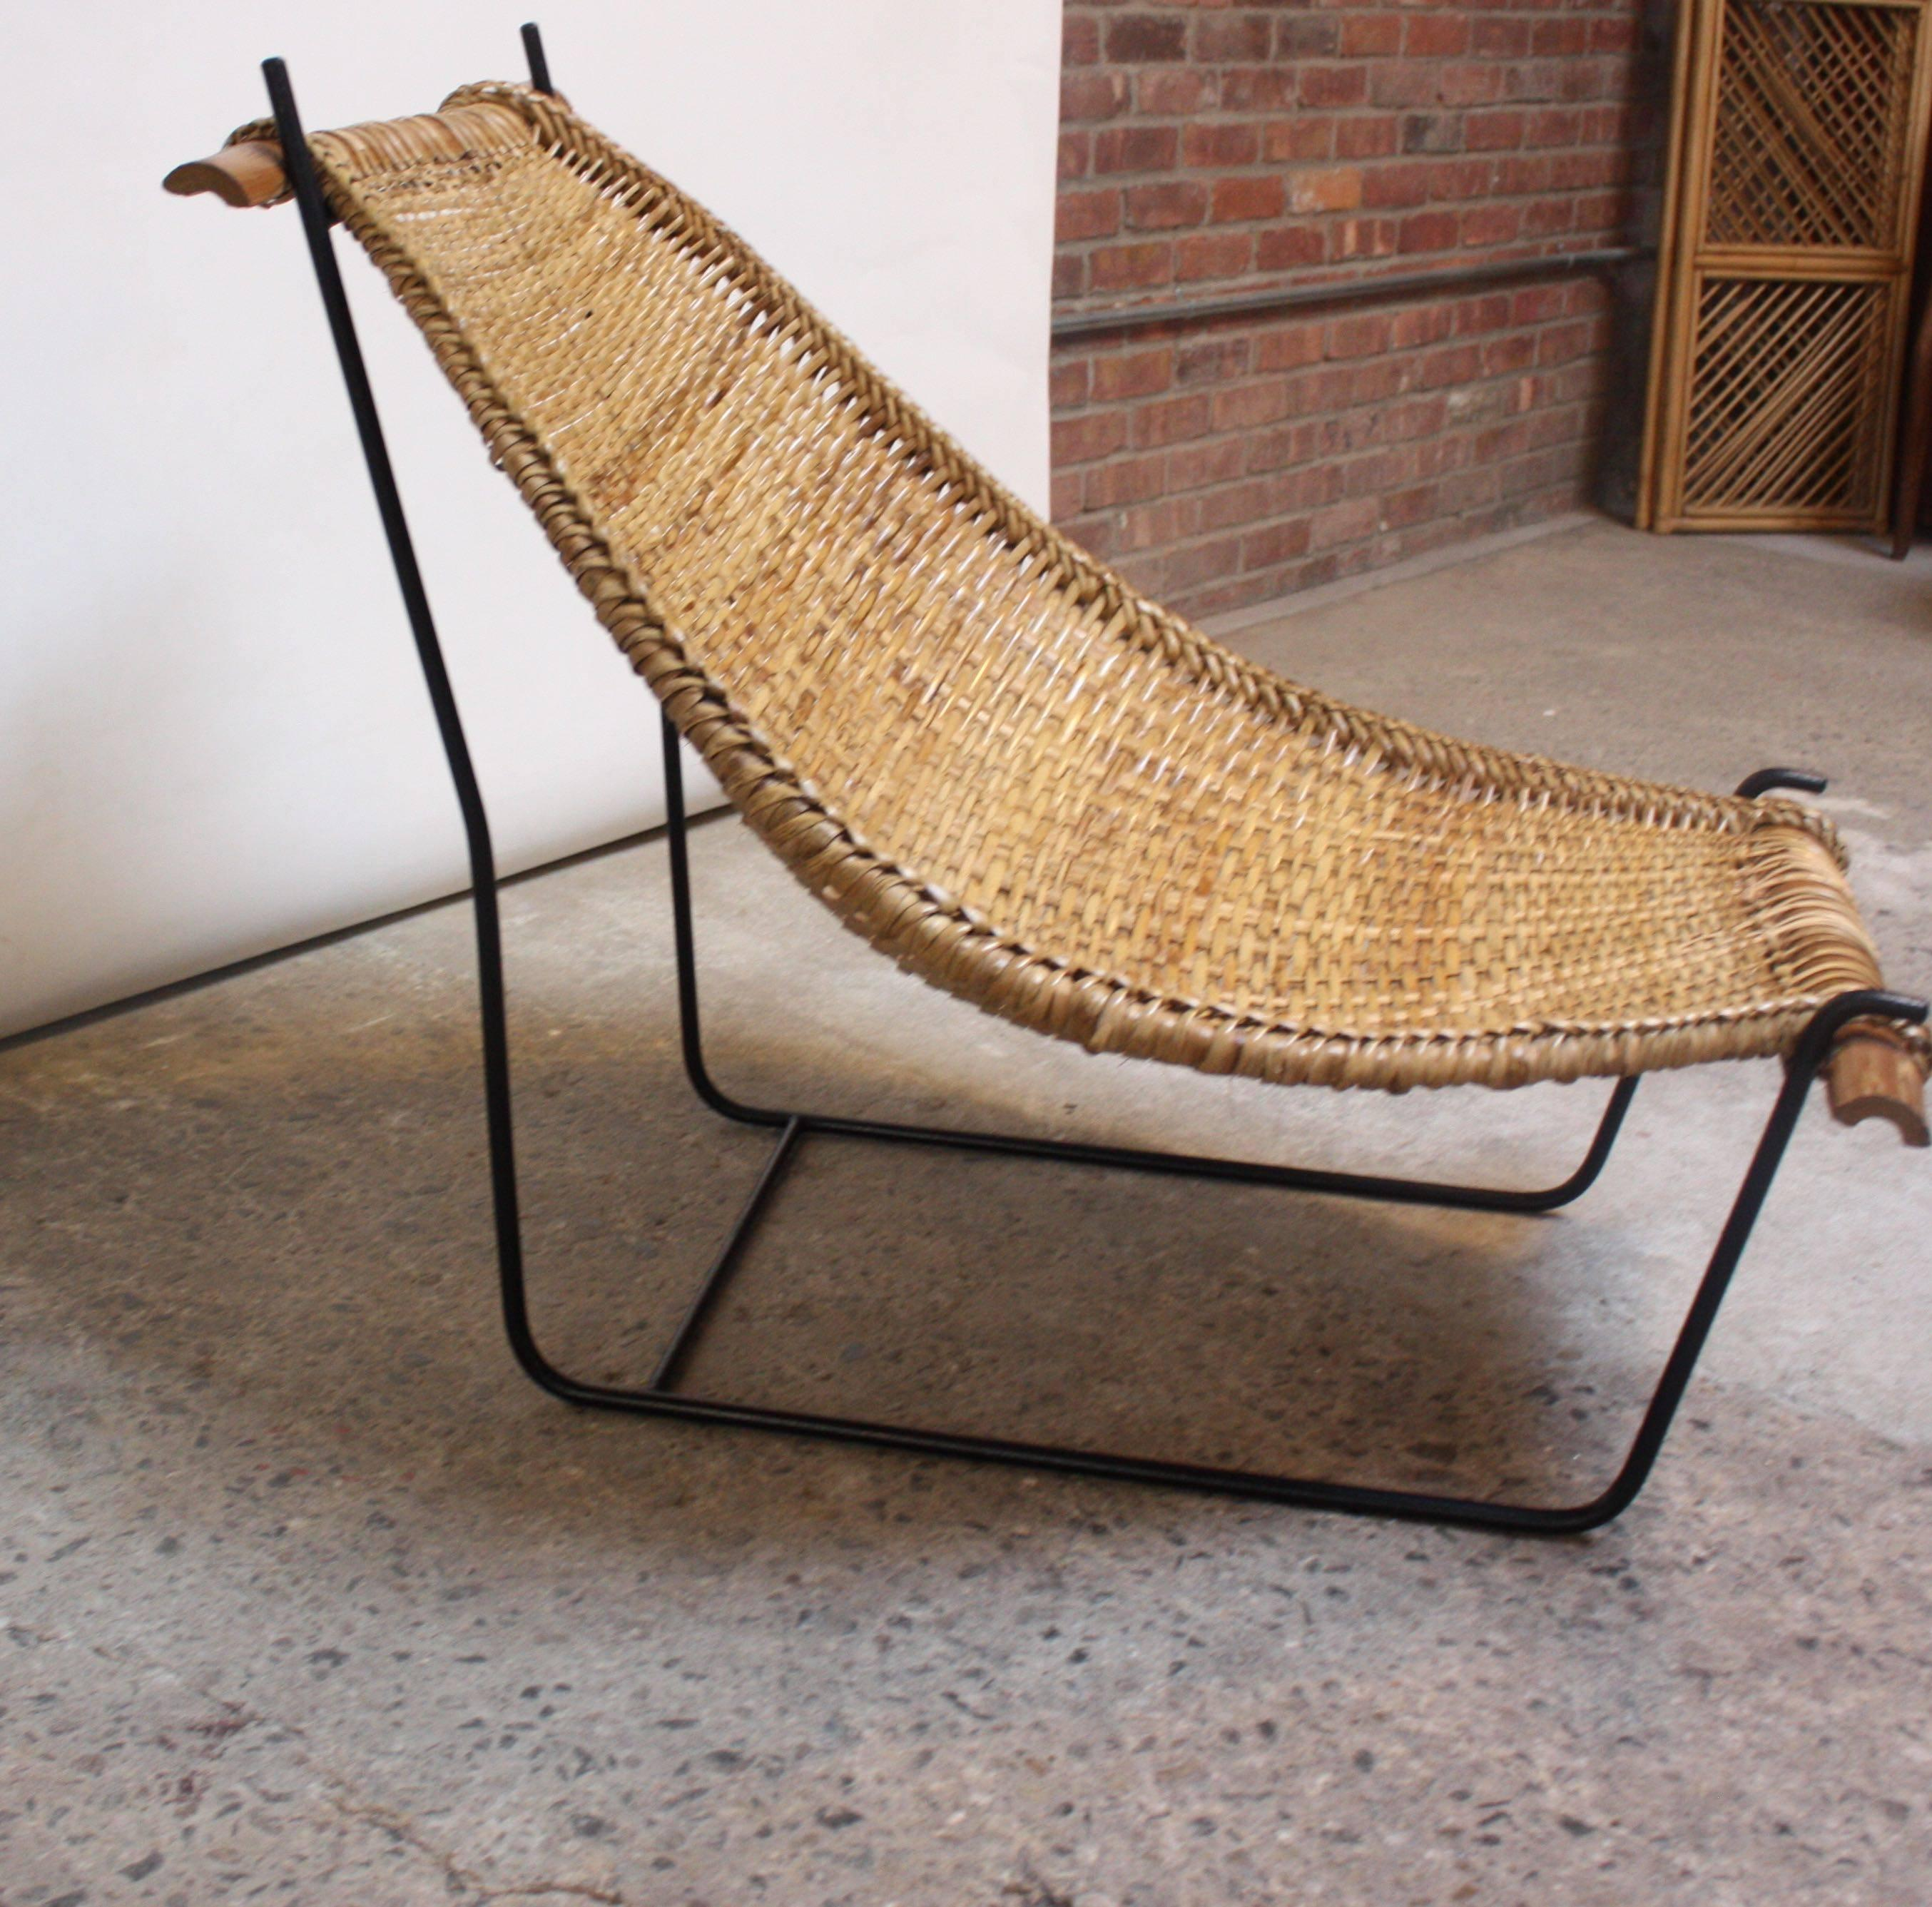 Rattan Lounge Chair Philippines John Risley Duyan Rattan And Iron Sling Chair At 1stdibs